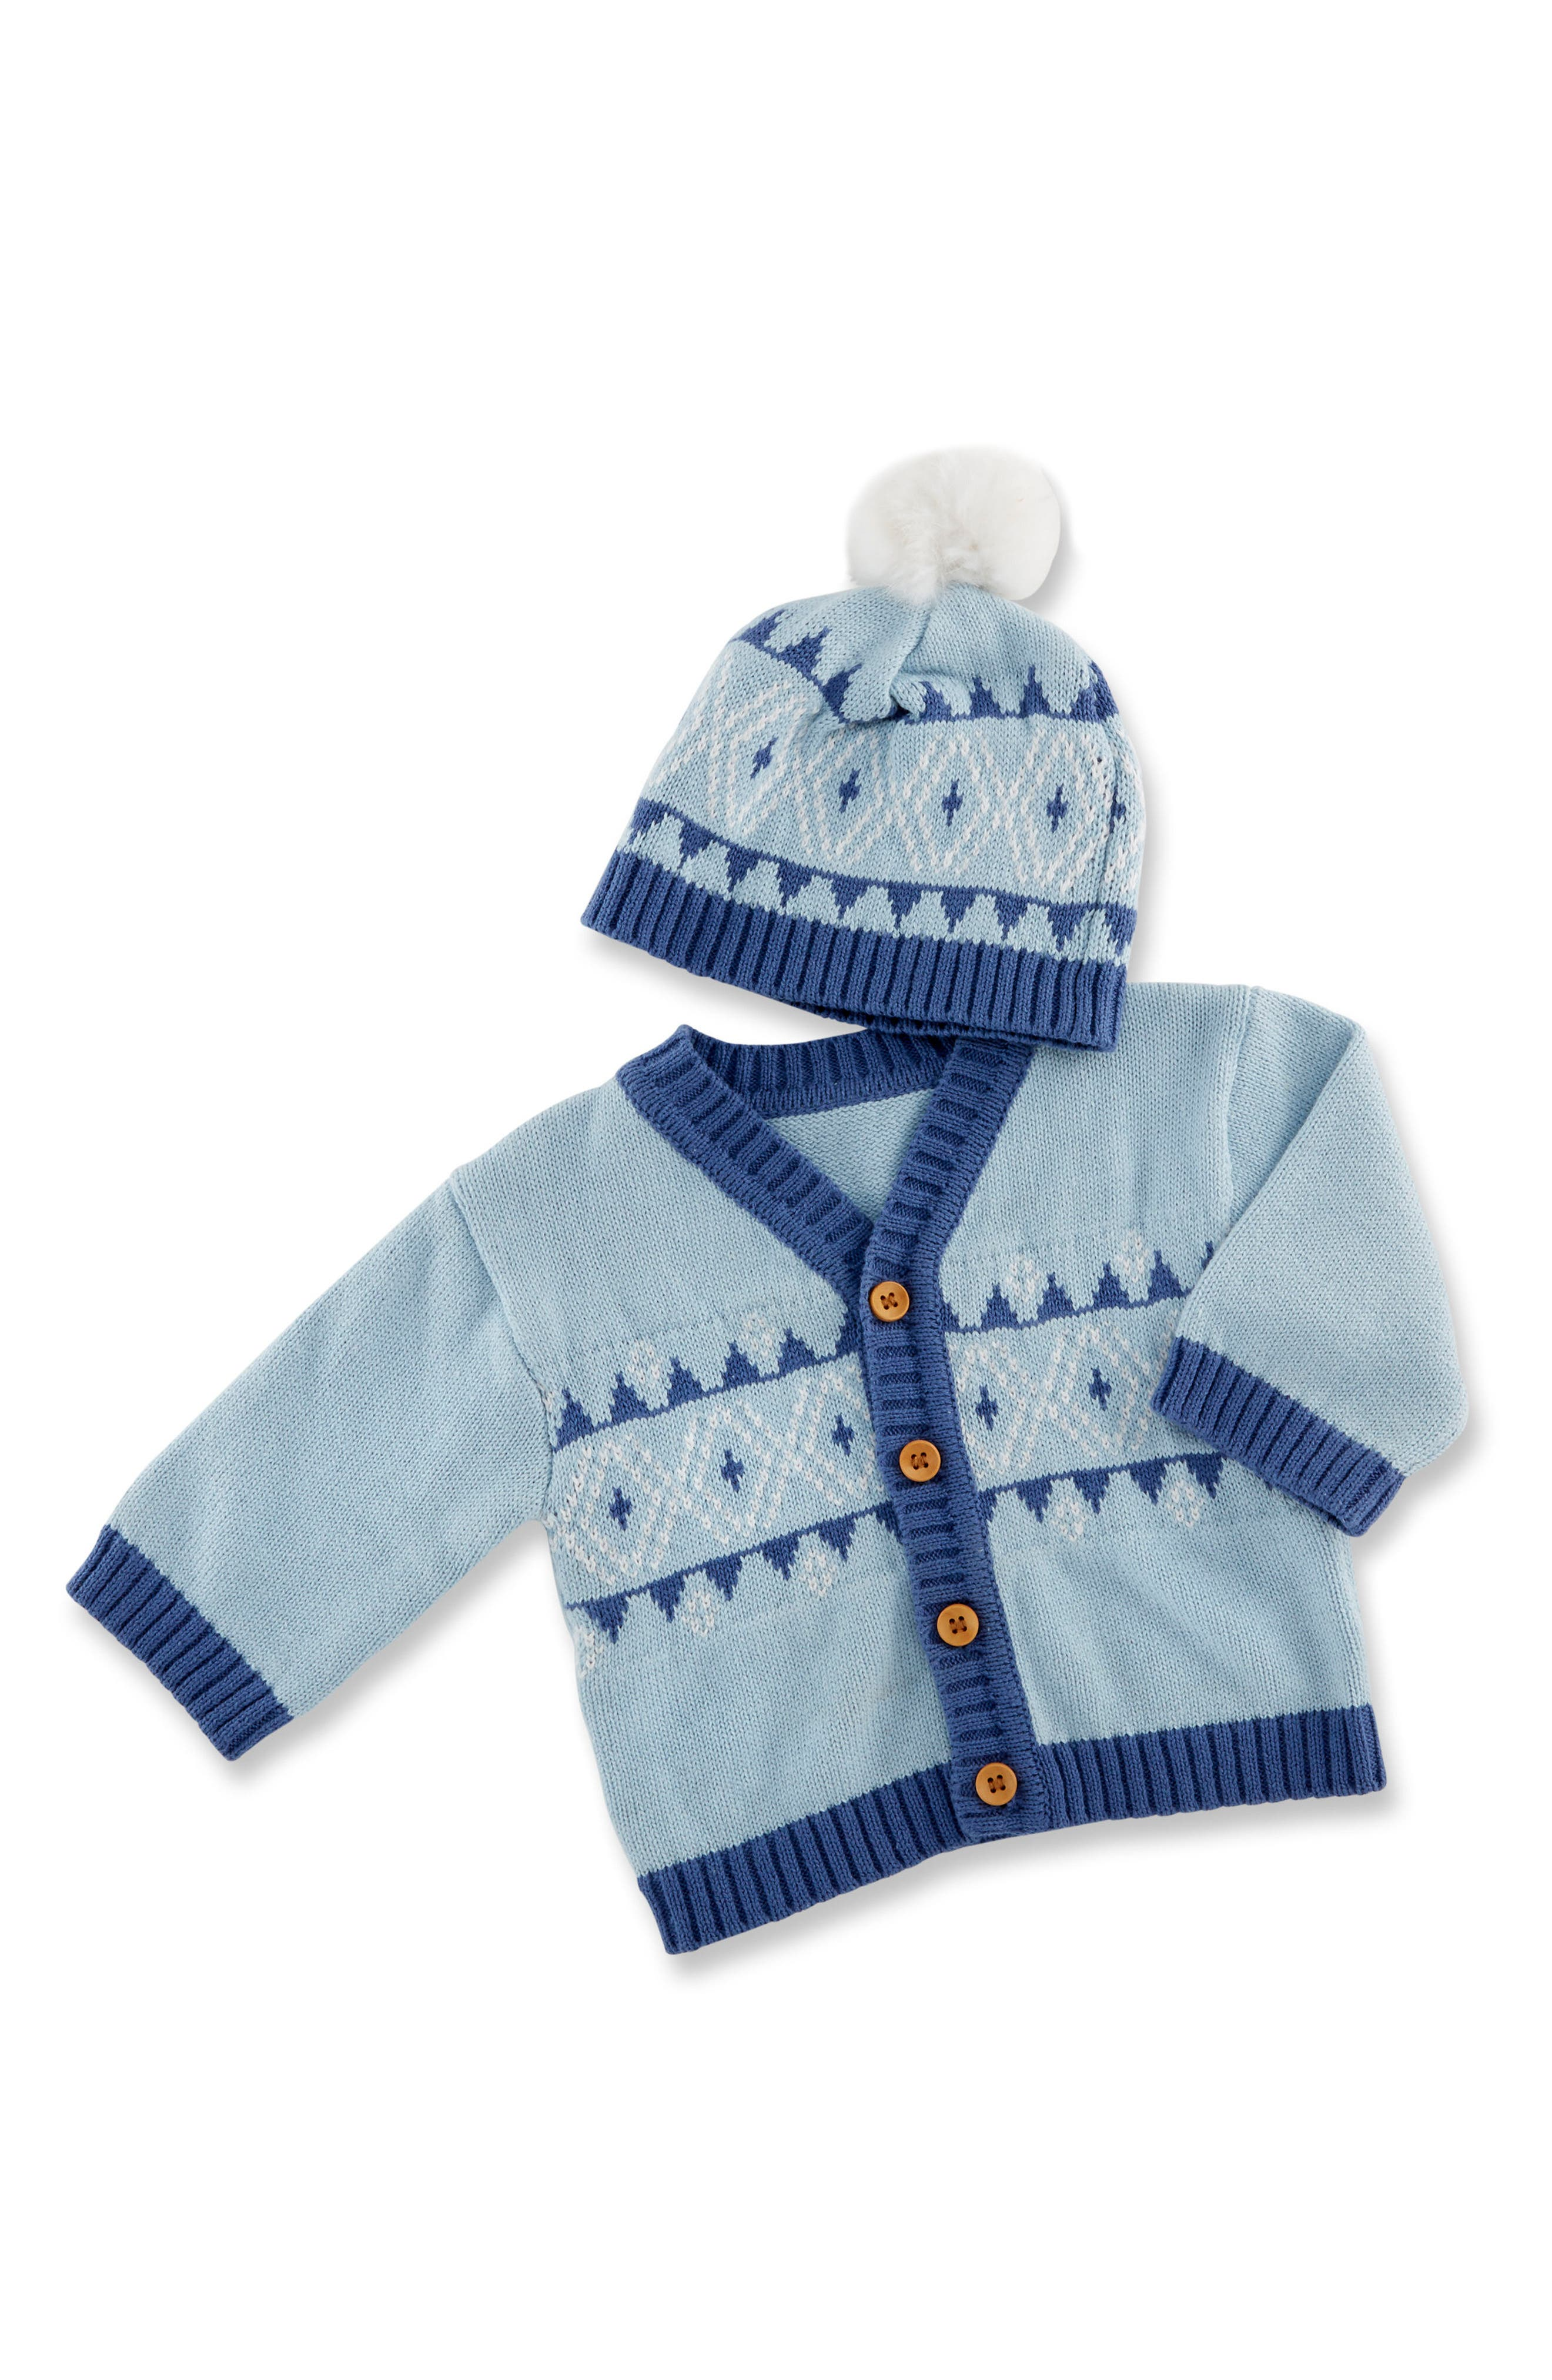 Main Image - Baby Aspen Fairy Tale Forest Cardigan & Hat Set (Baby Boys)